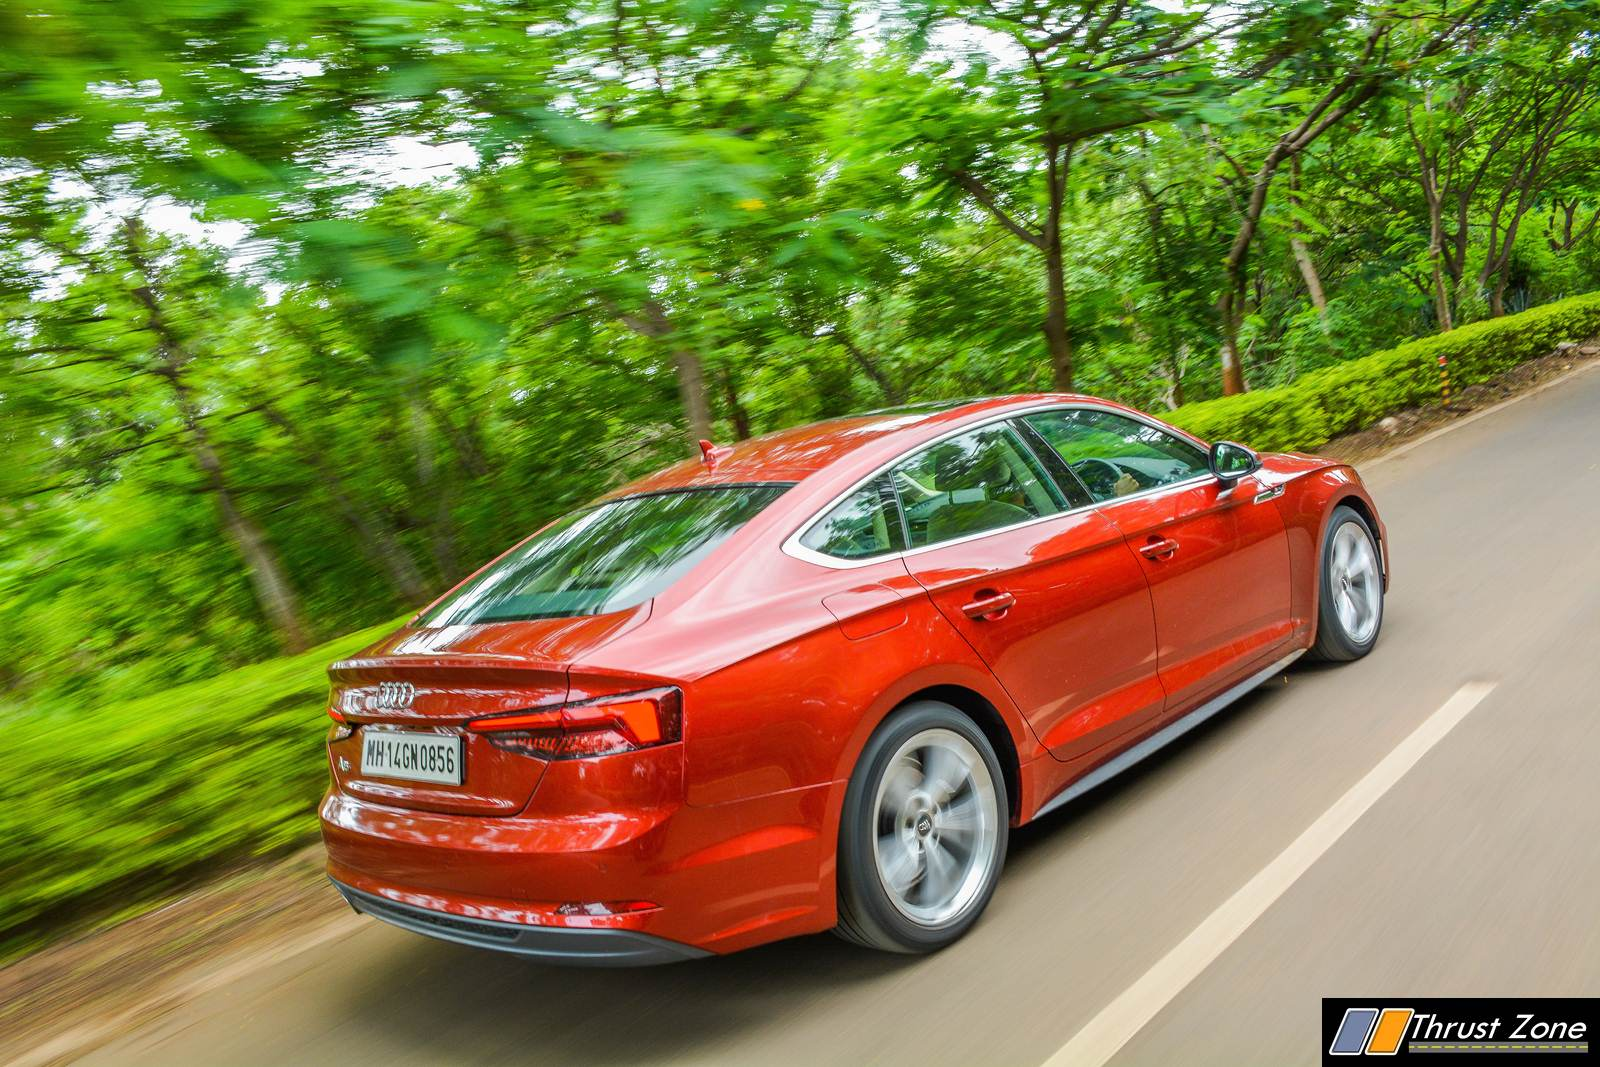 https://www.thrustzone.com/wp-content/uploads/2018/08/2018-Audi-A5-Diesel-India-Review-36.jpg